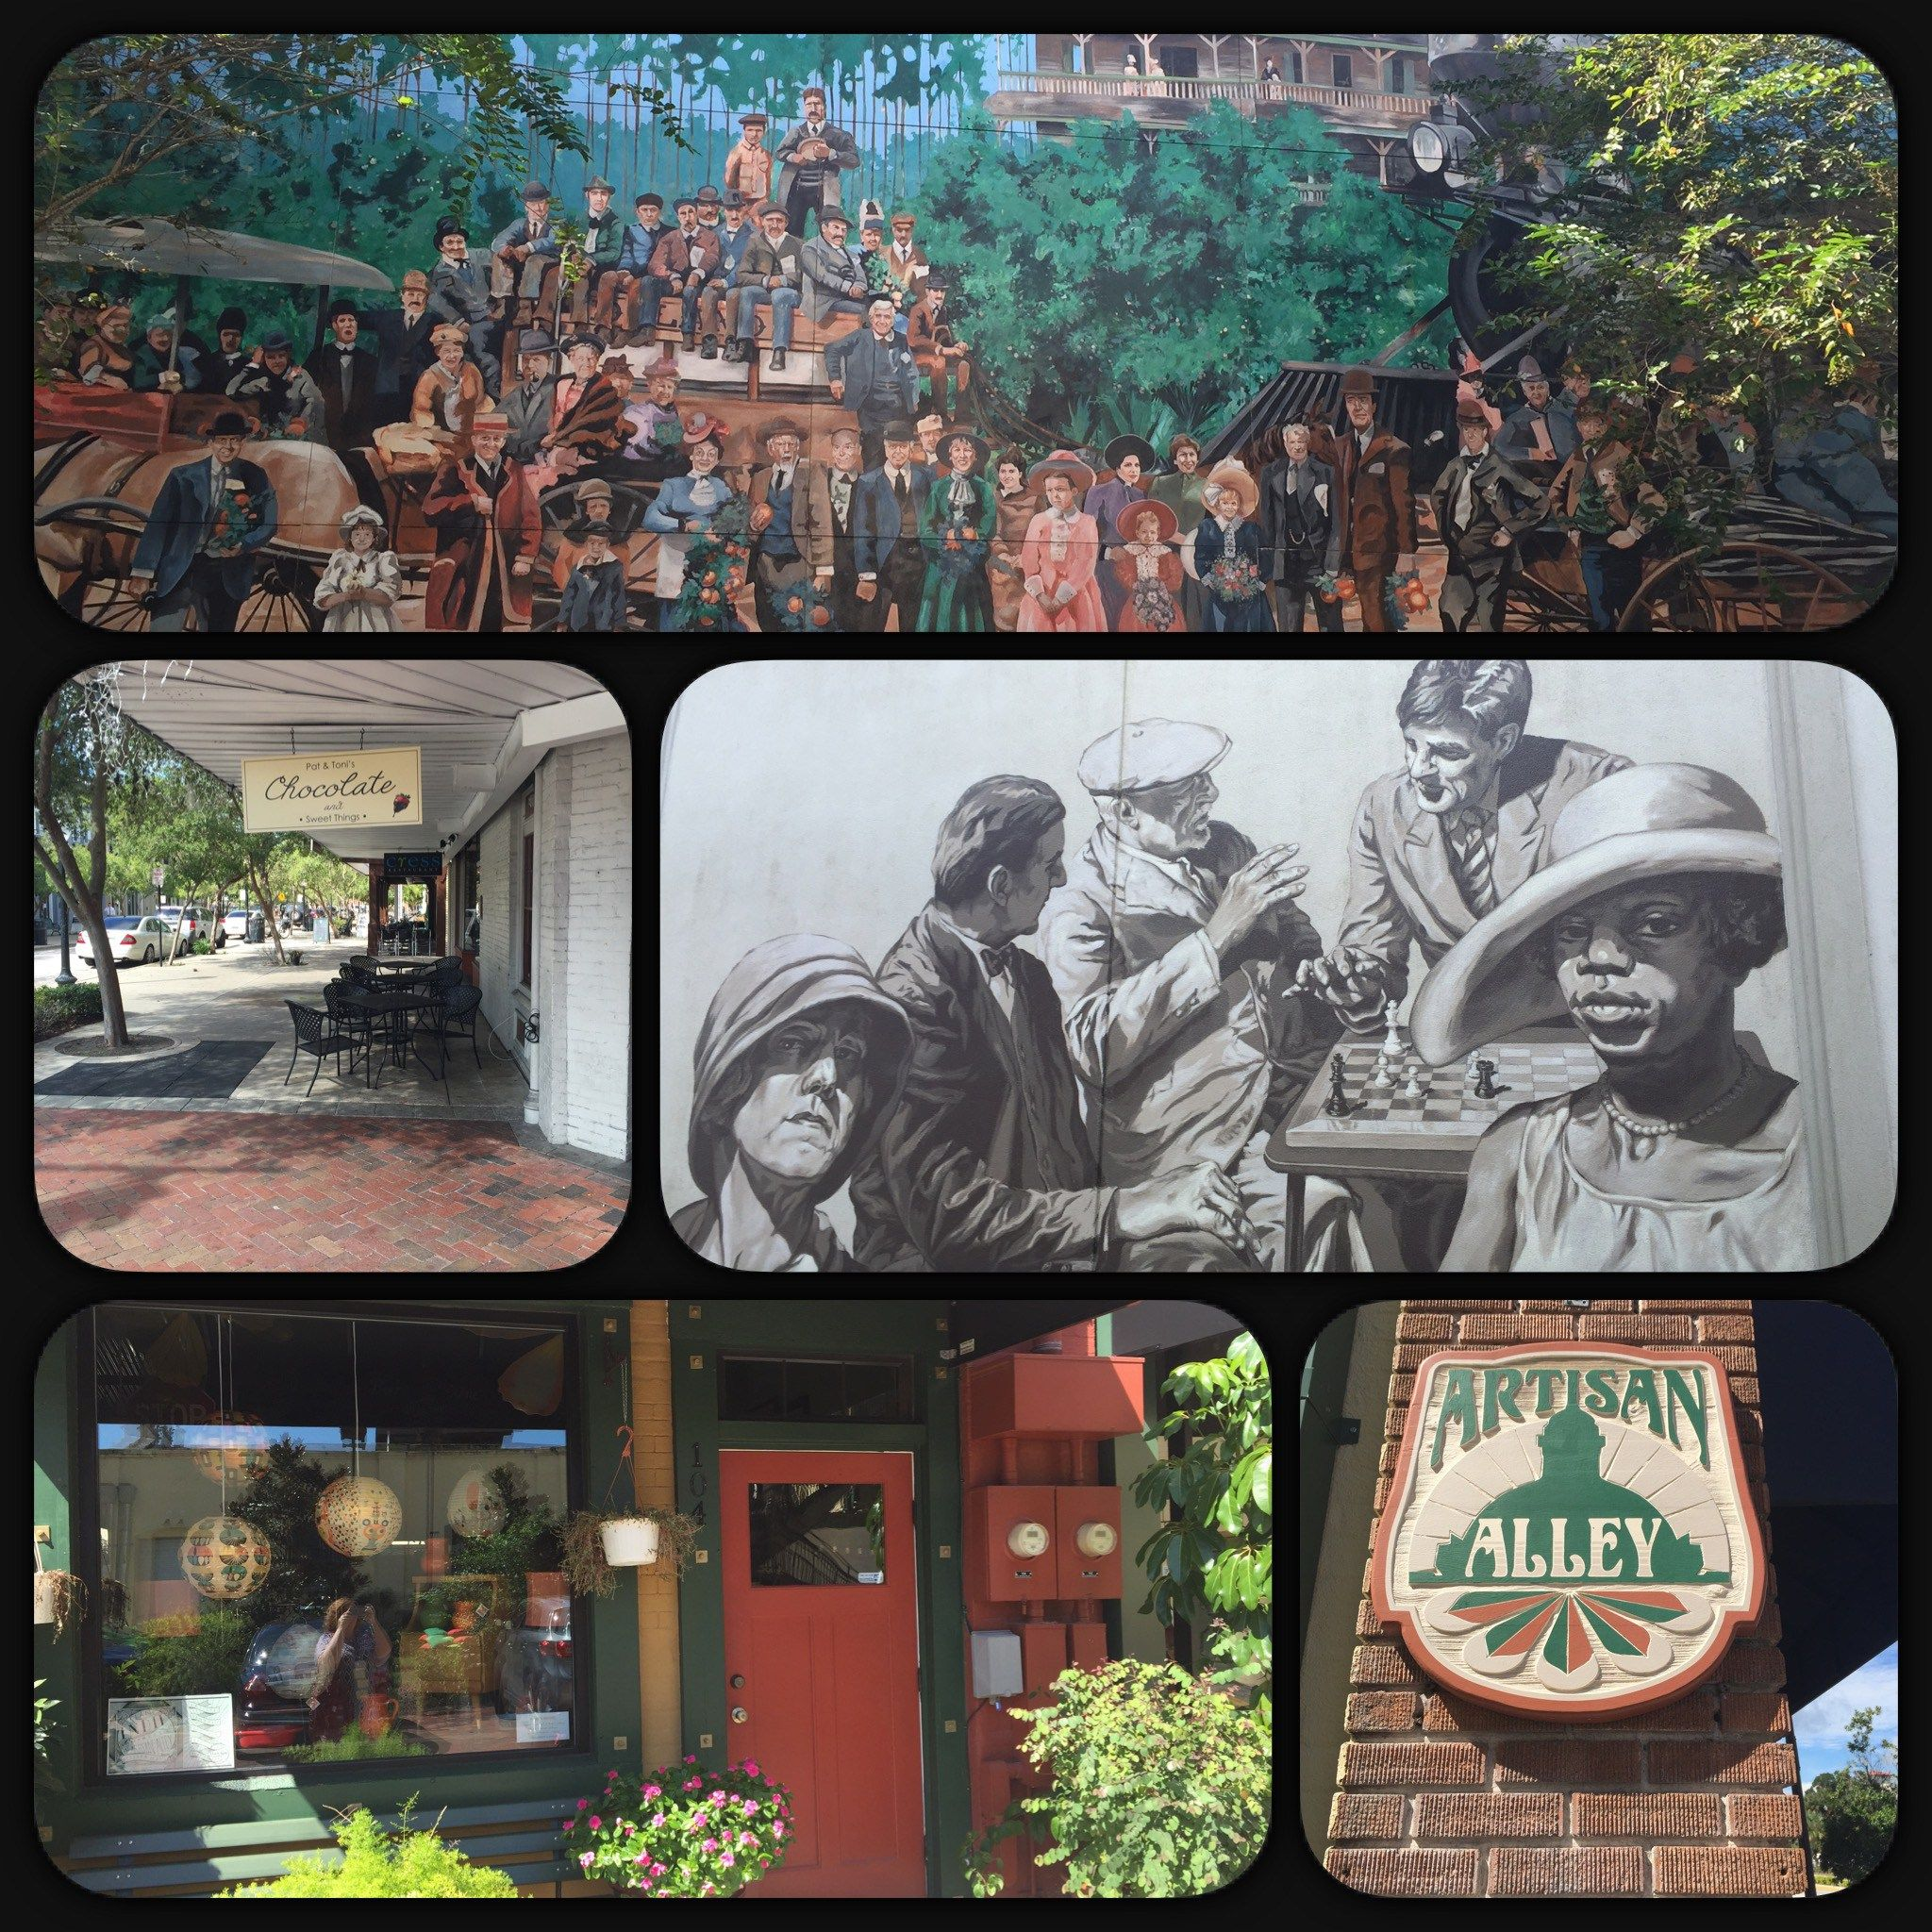 Affordable things to do in deland fl things to do